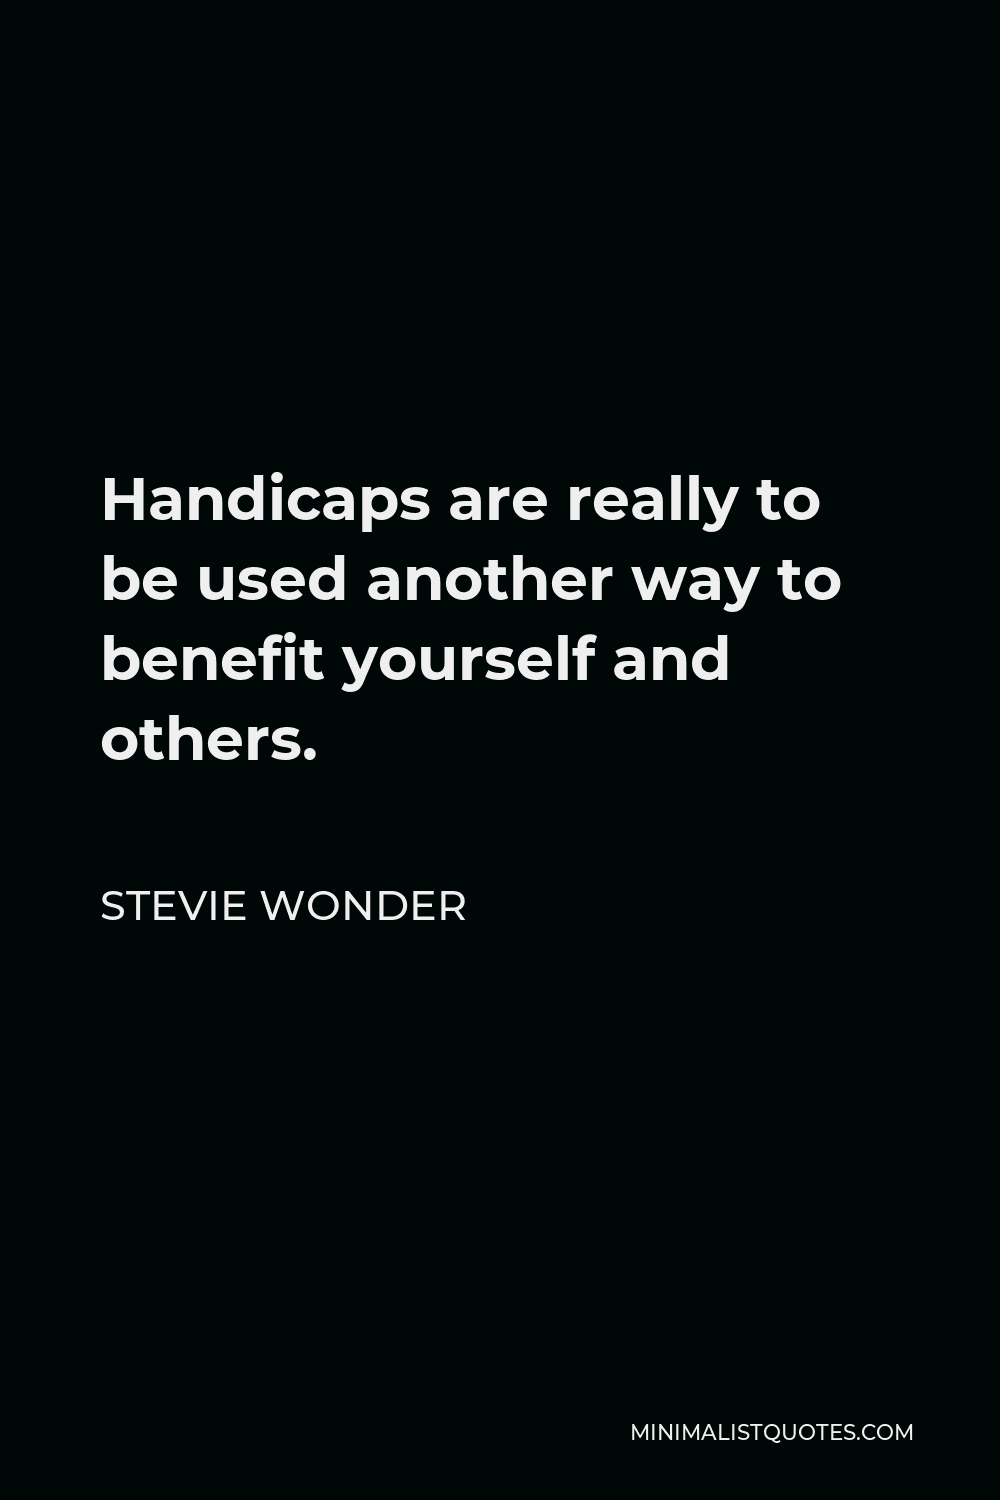 Stevie Wonder Quote - Handicaps are really to be used another way to benefit yourself and others.